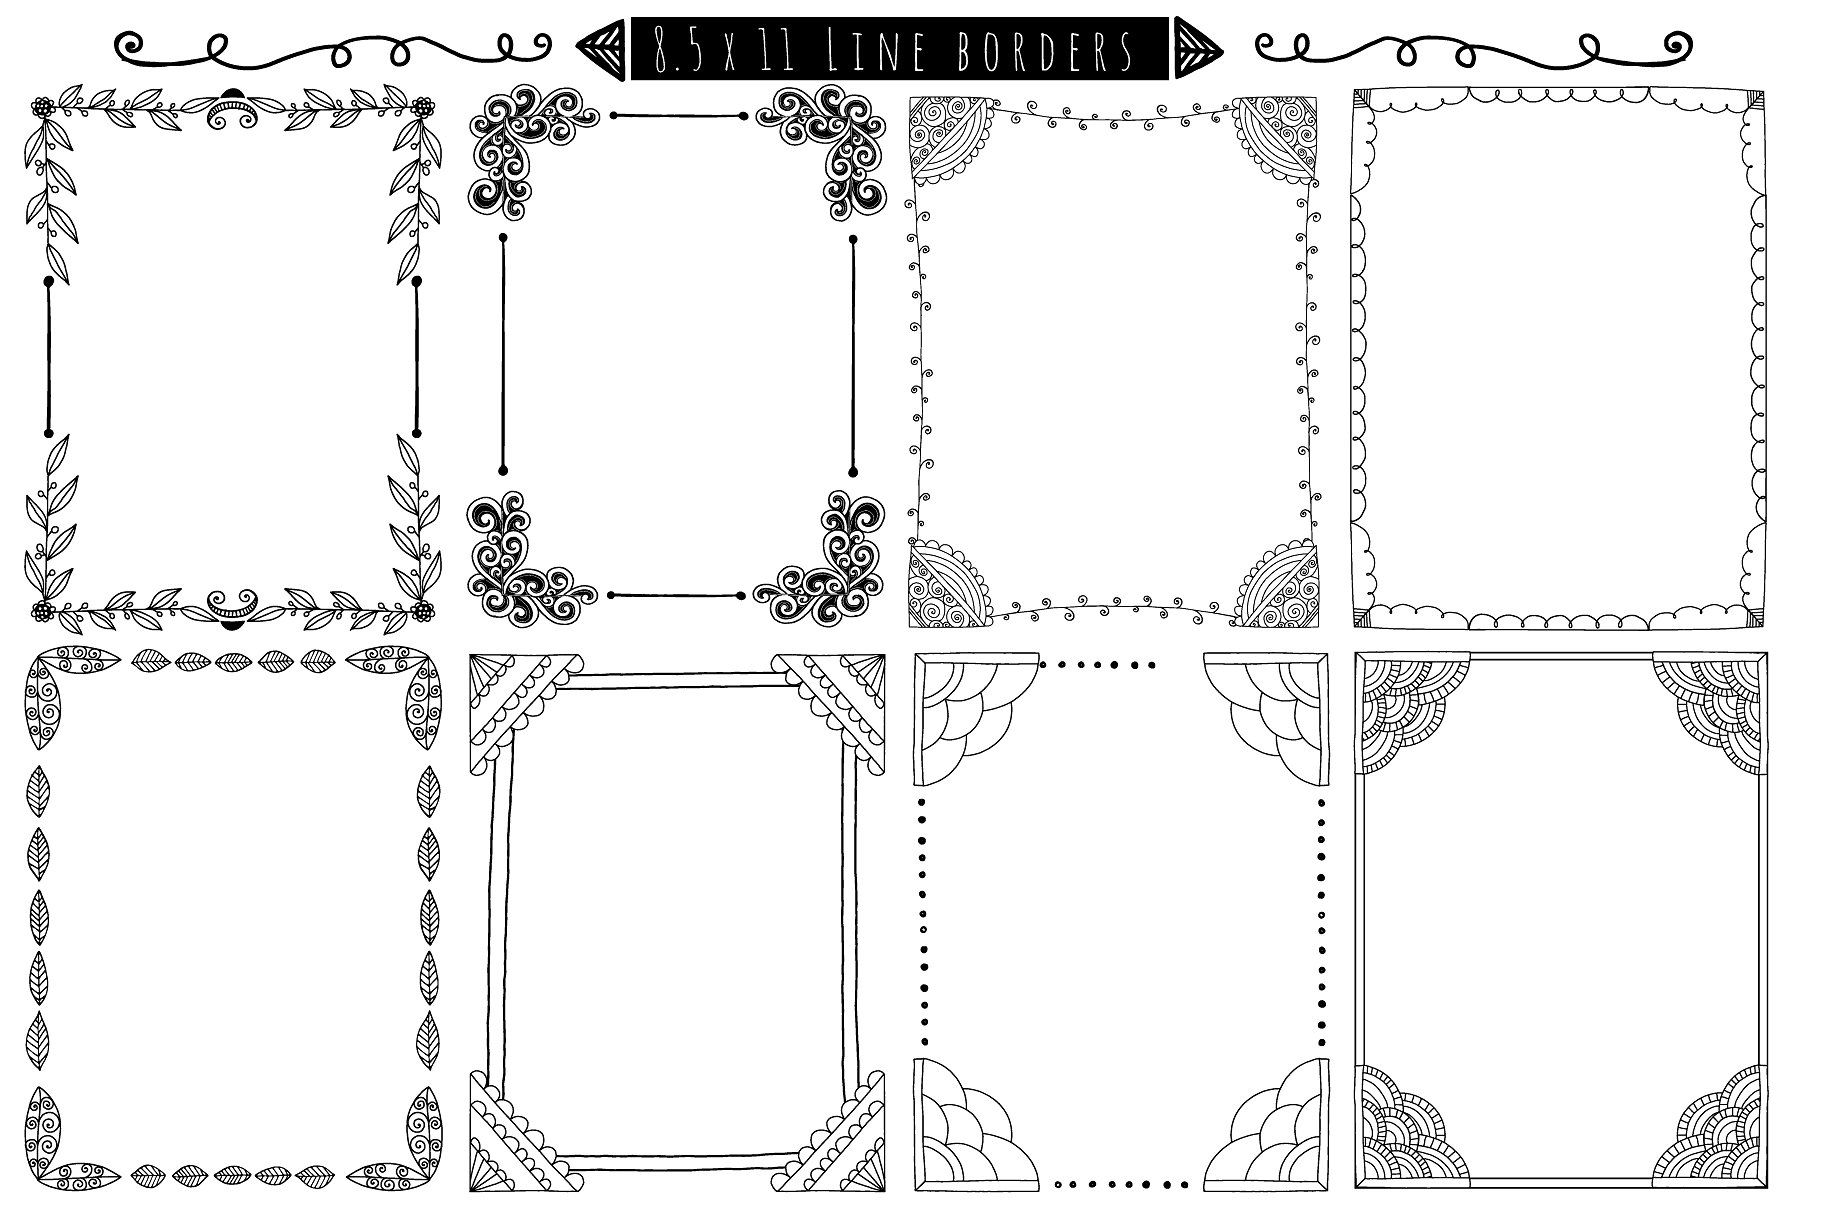 Decorative Borders Corners Frames How To Draw Hands Page Borders Design Decorative Borders